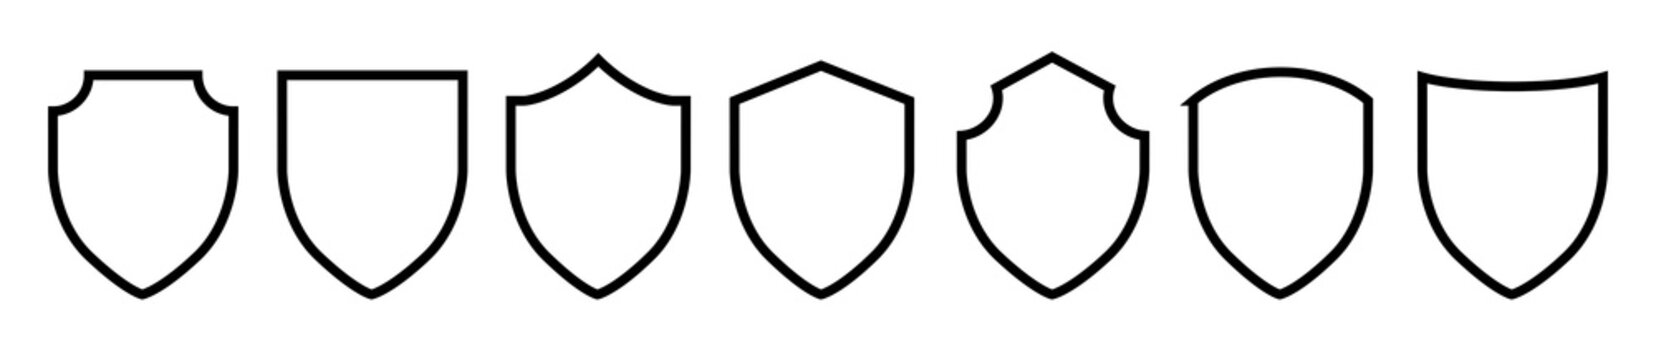 Black line shield icon set in vintage style. Protect shield security icons. Badge quality symbol, sign, logo, emblem. Vector illustration.